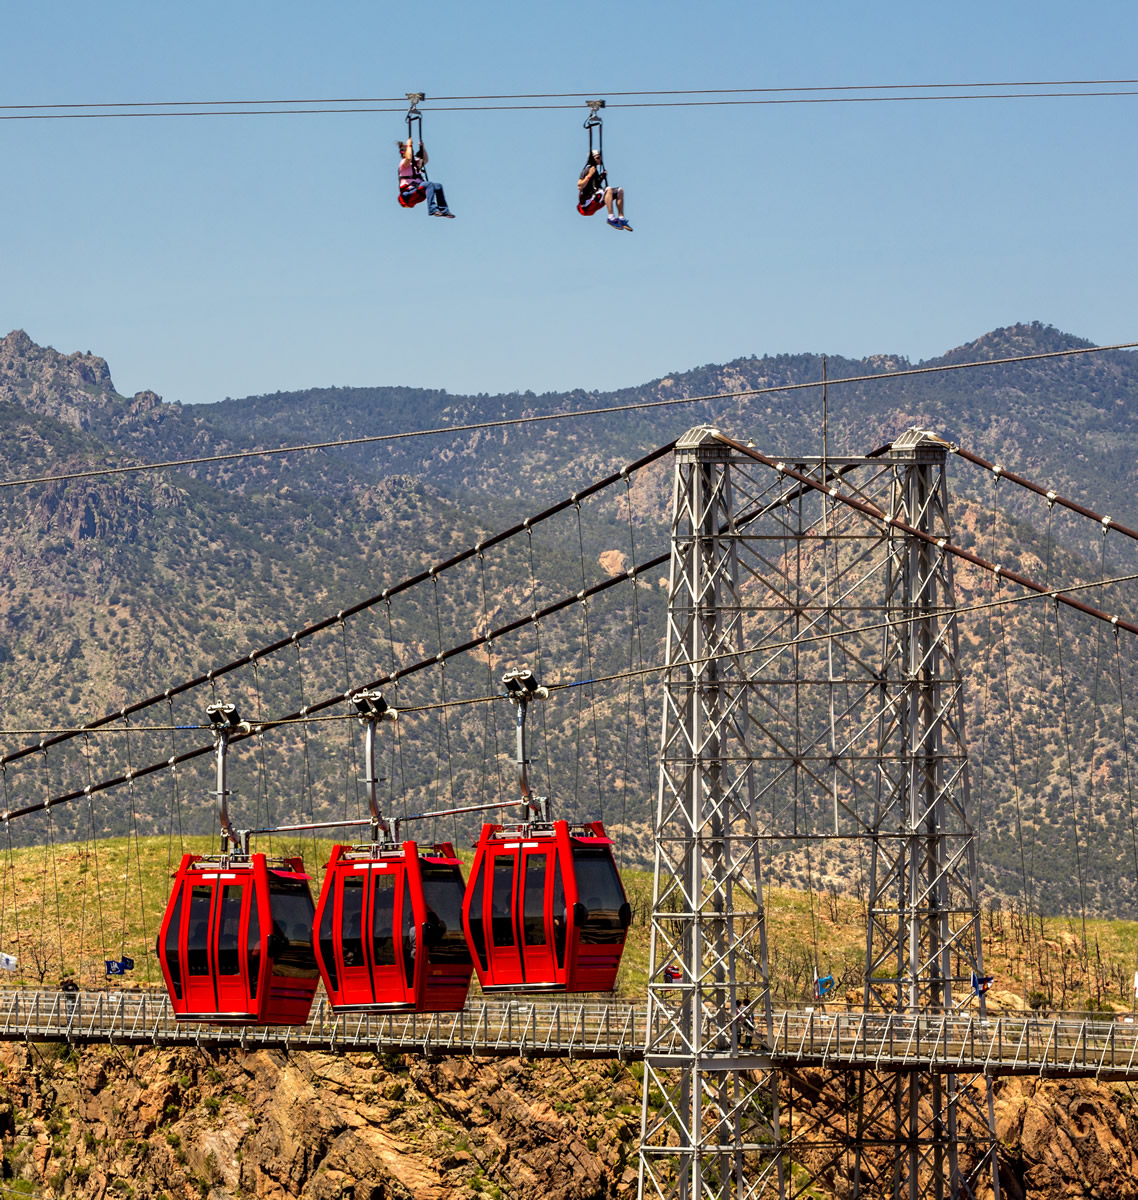 ZipRider Across The Royal Gorge In Colorado